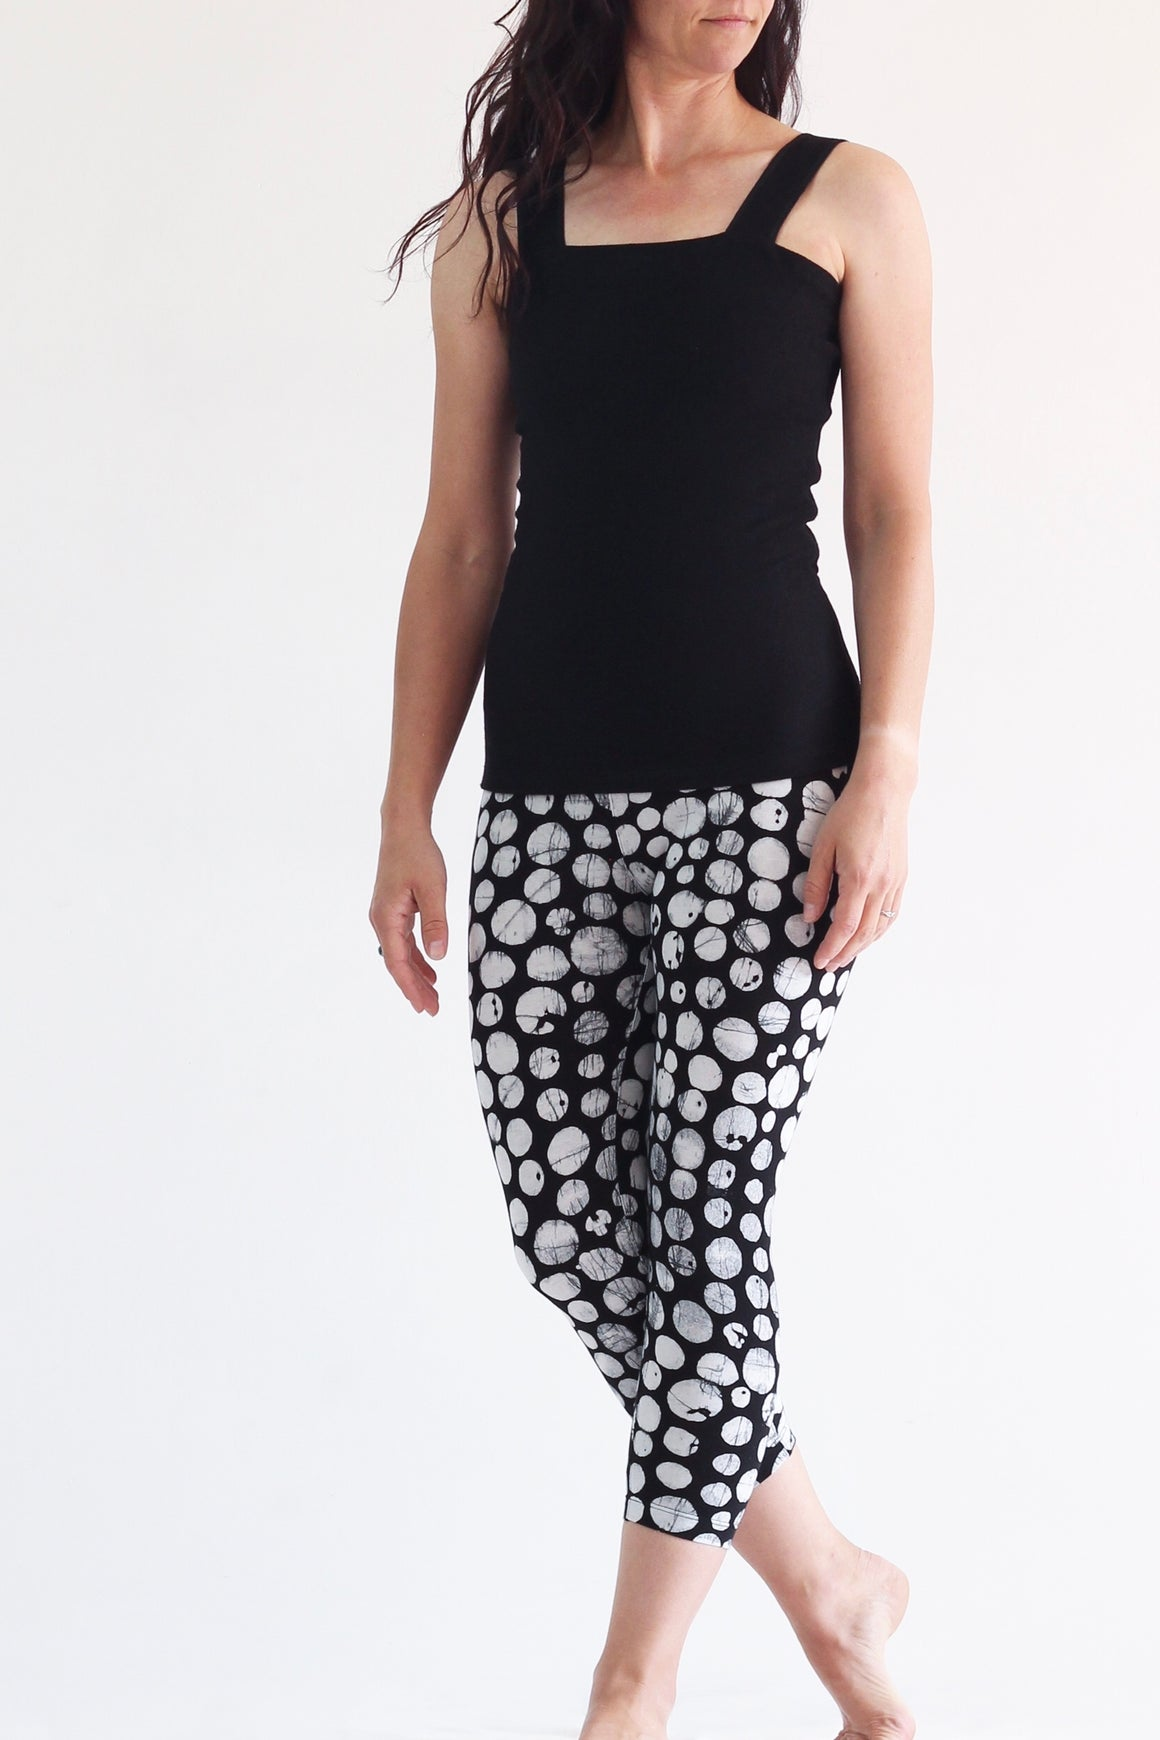 Natural Bubbles - Leggings or Crops